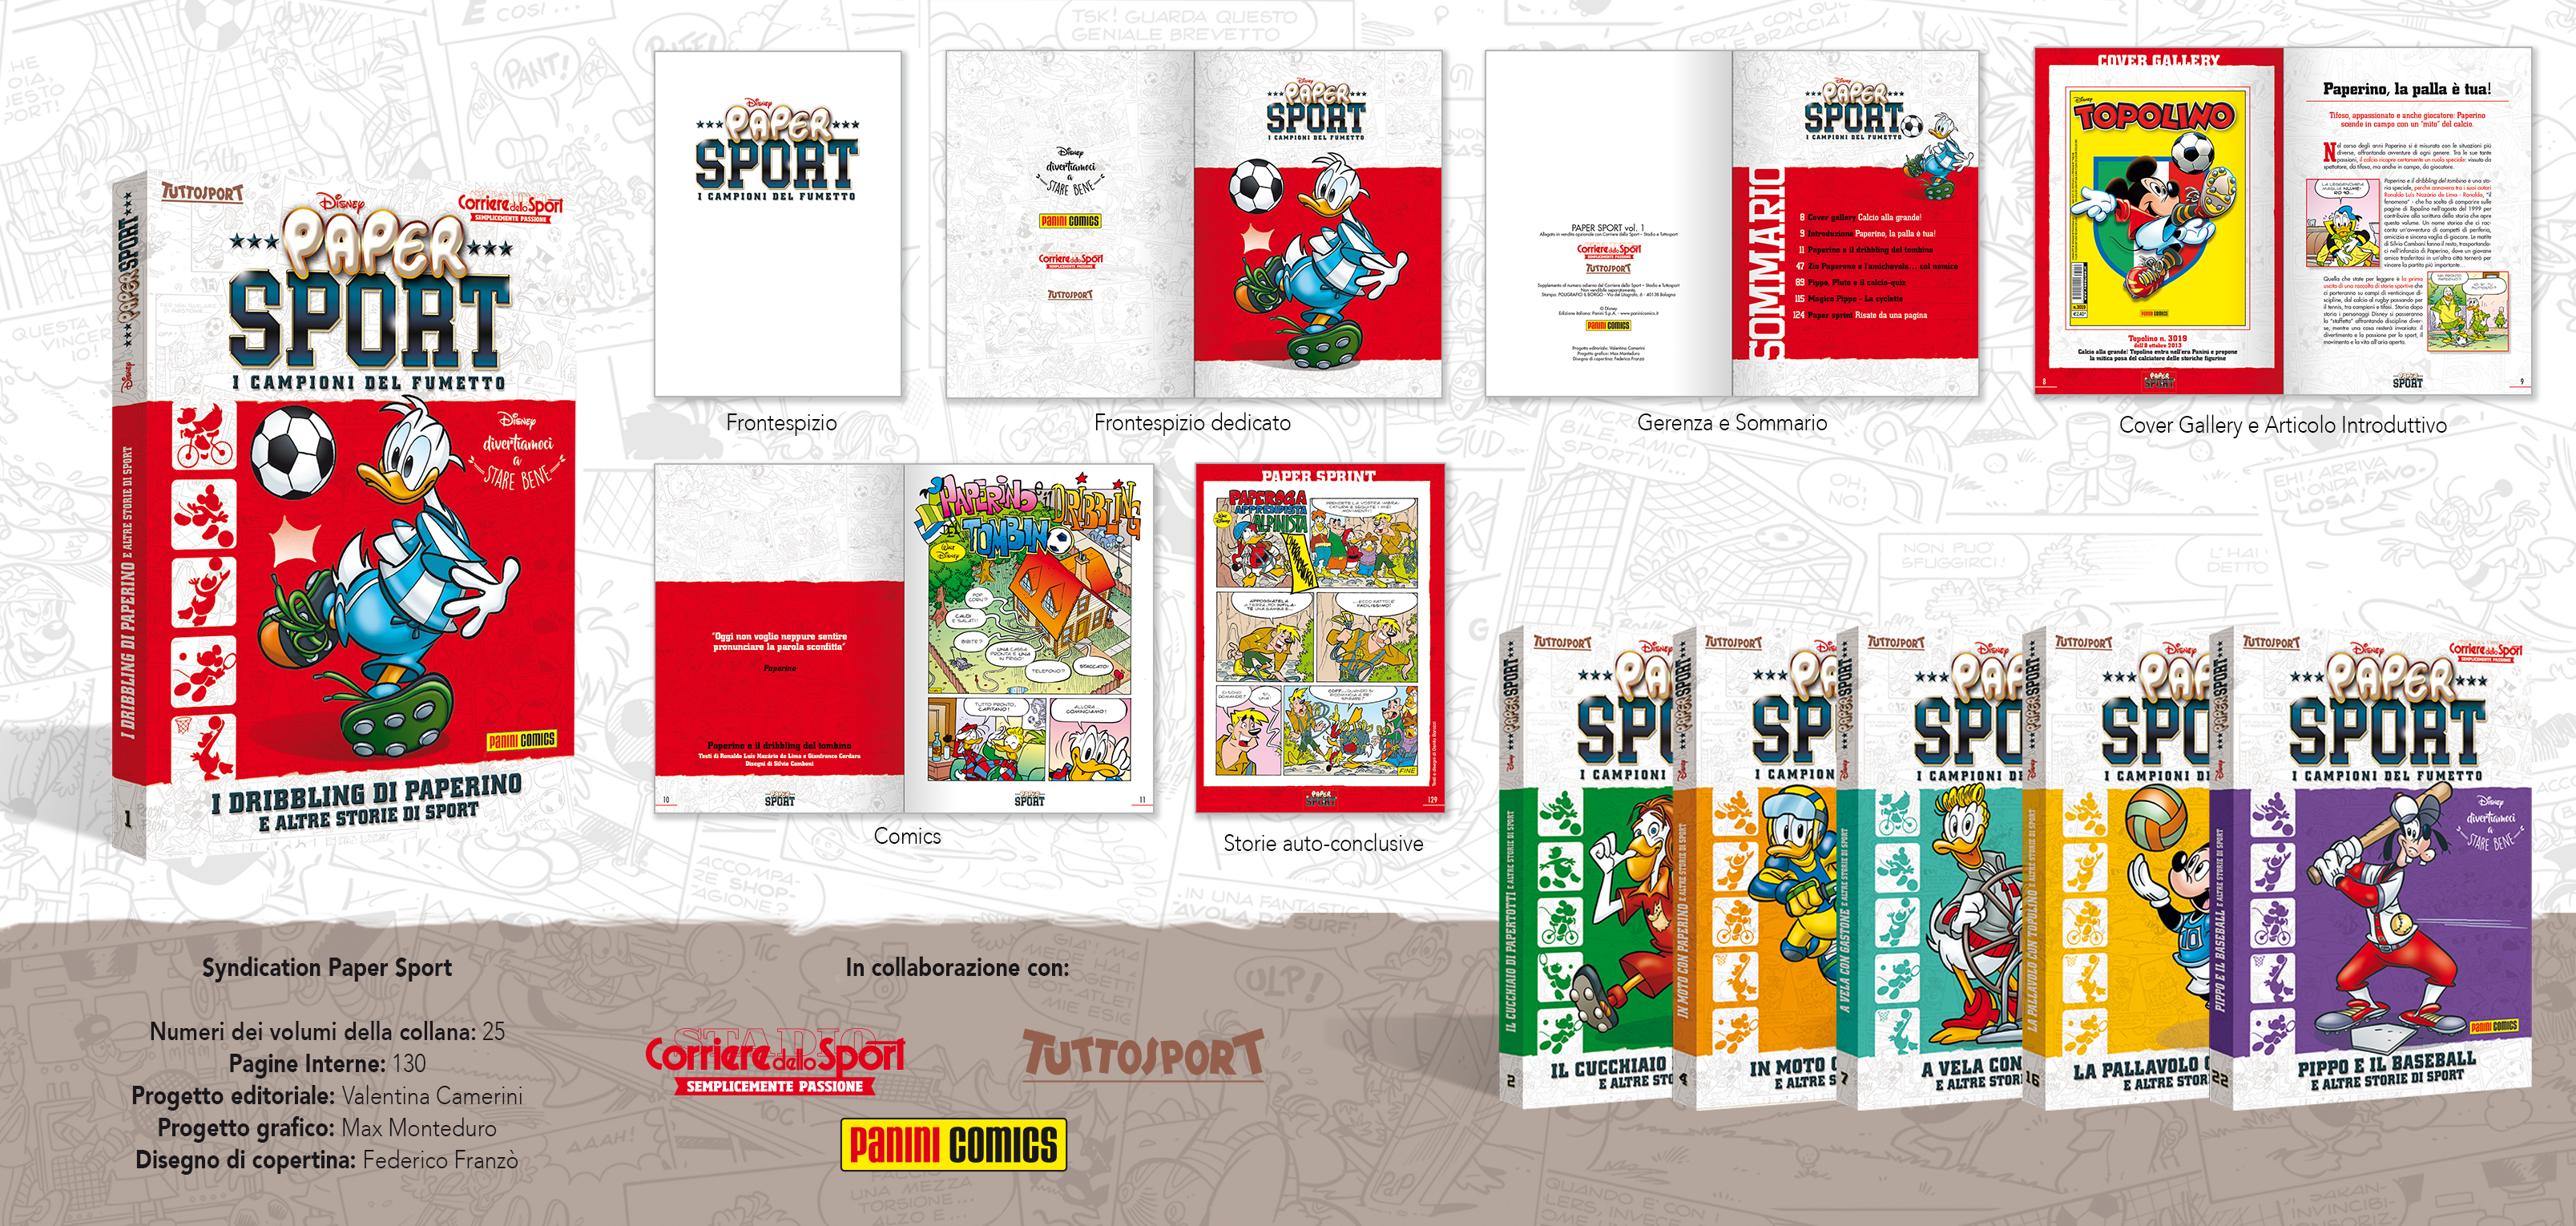 Paper Sport Syndication